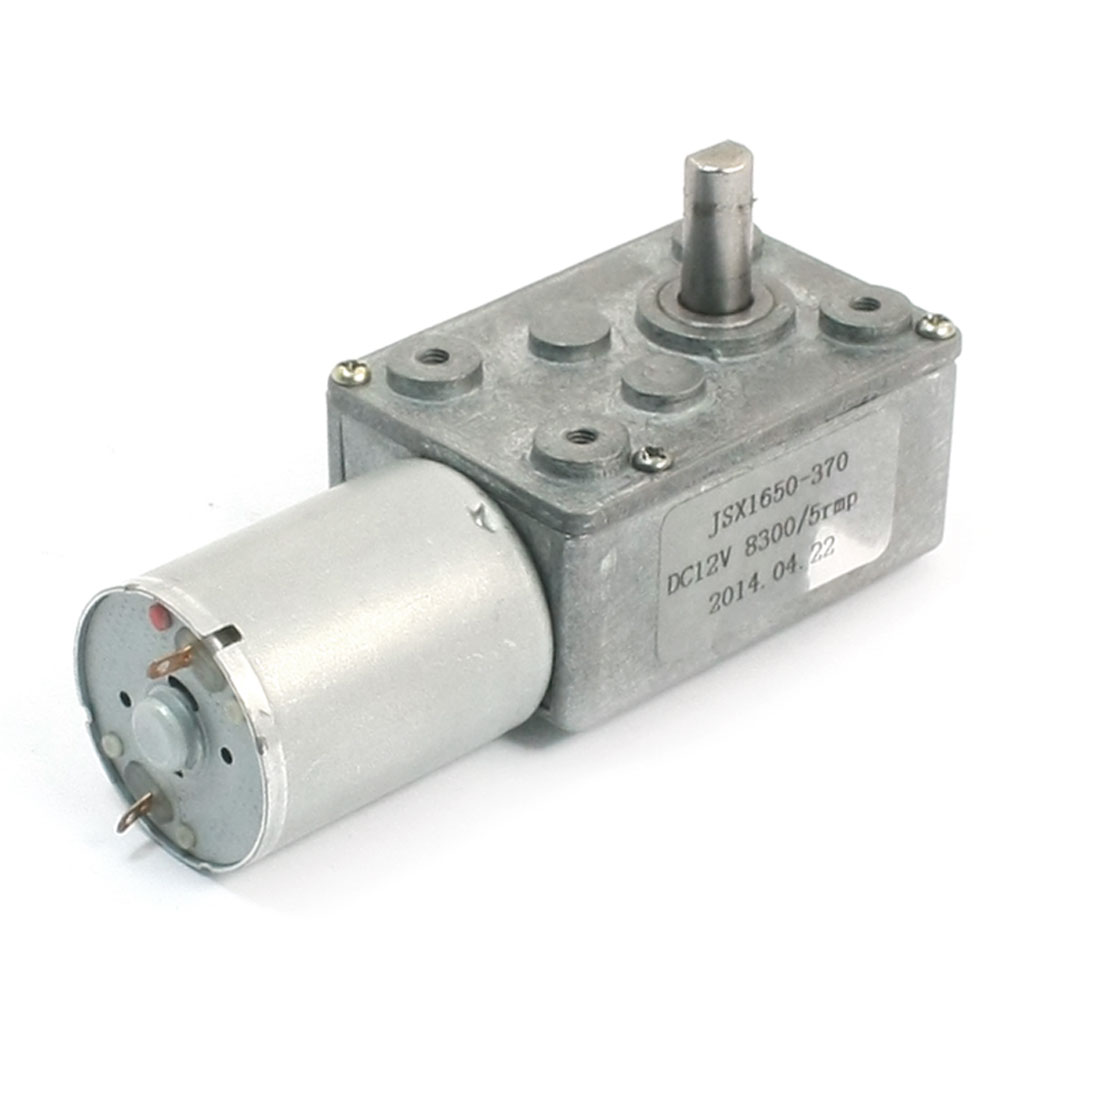 DC12V 8300RPM 5RPM Output 4.5mm Dia Shaft High Torque Reducer Gear Motor